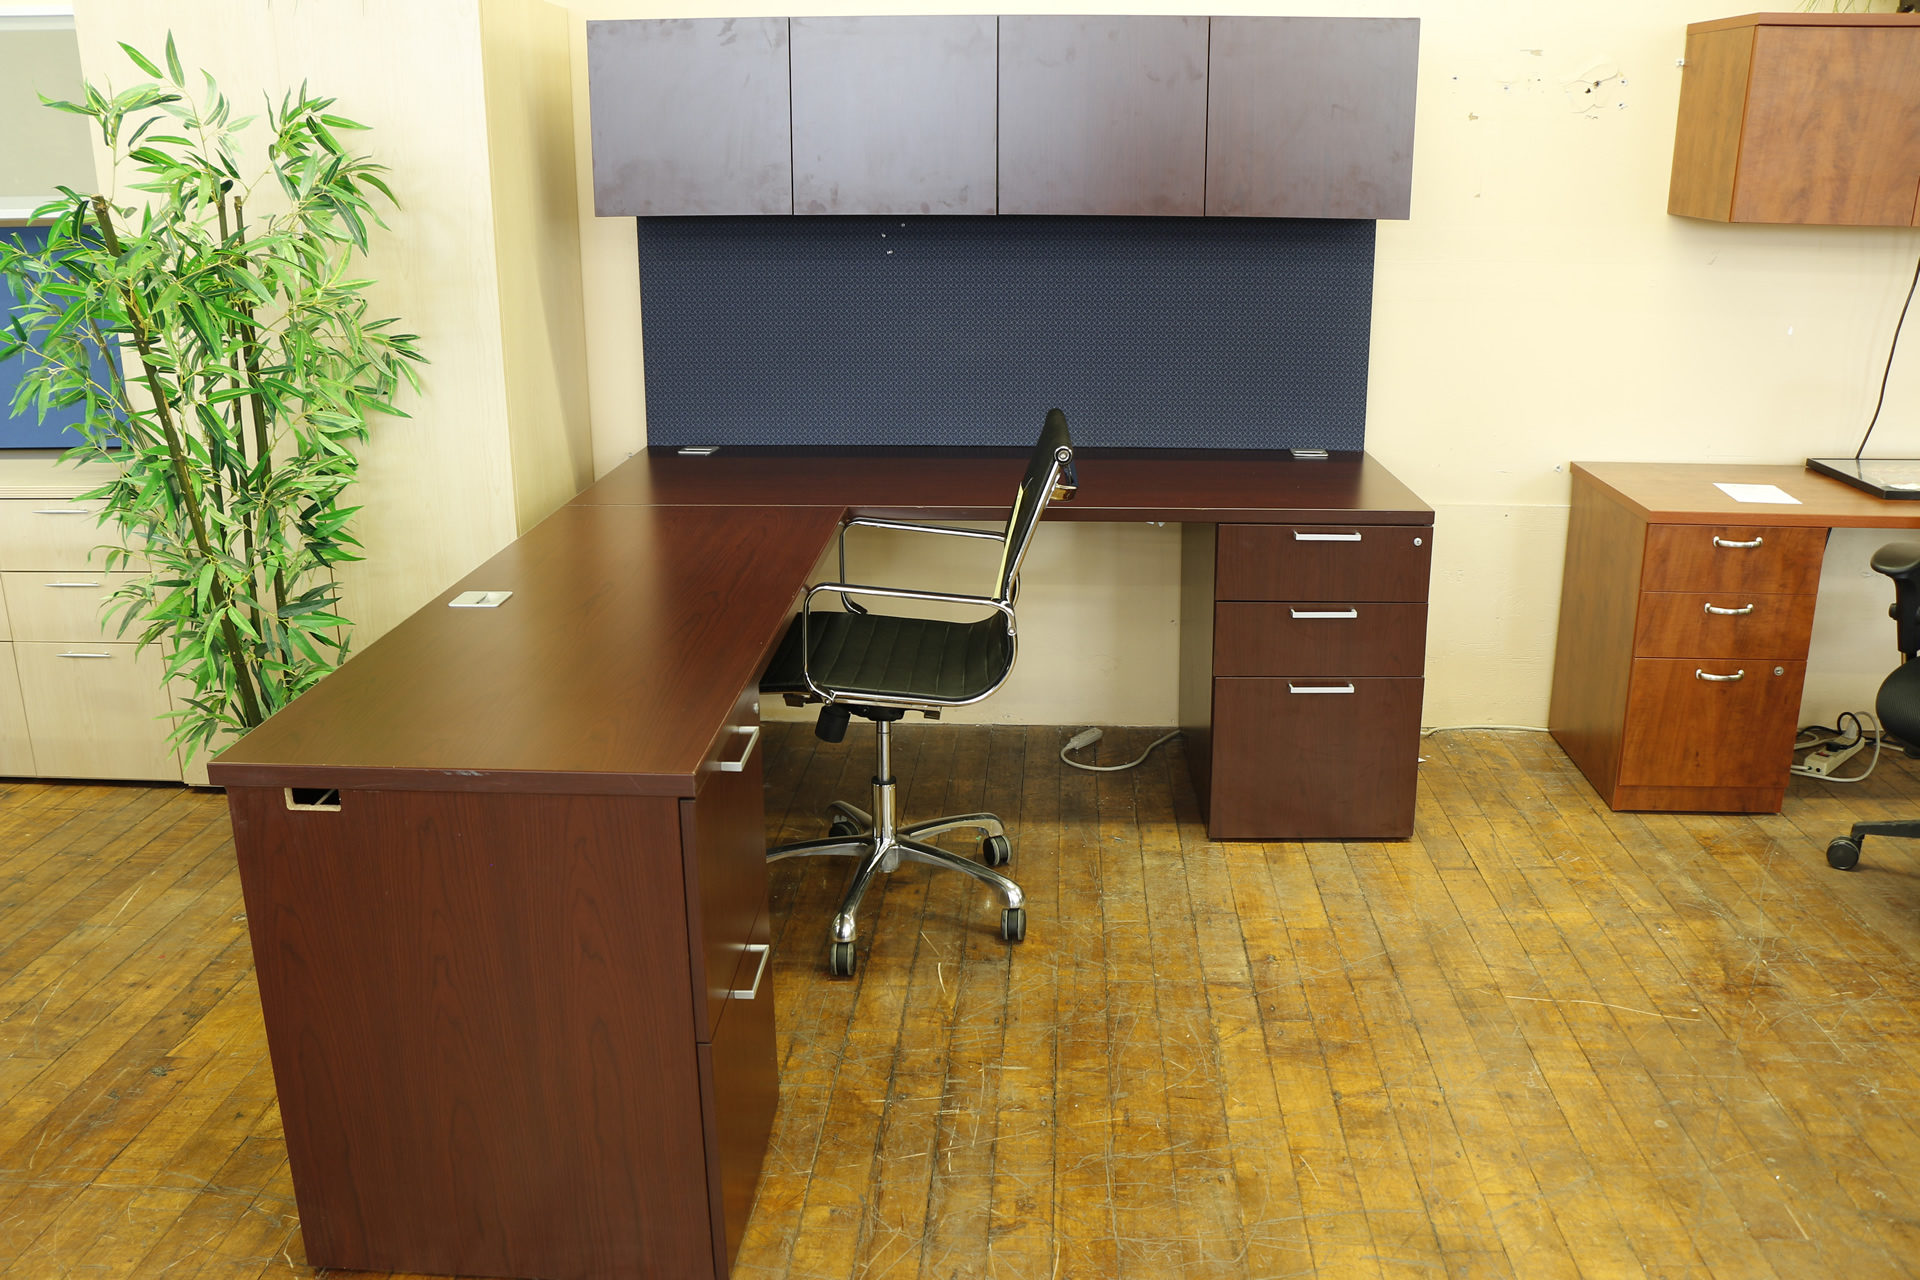 peartreeofficefurniture_peartreeofficefurniture_peartreeofficefurniture_2015-06-22_20-29-28.jpg